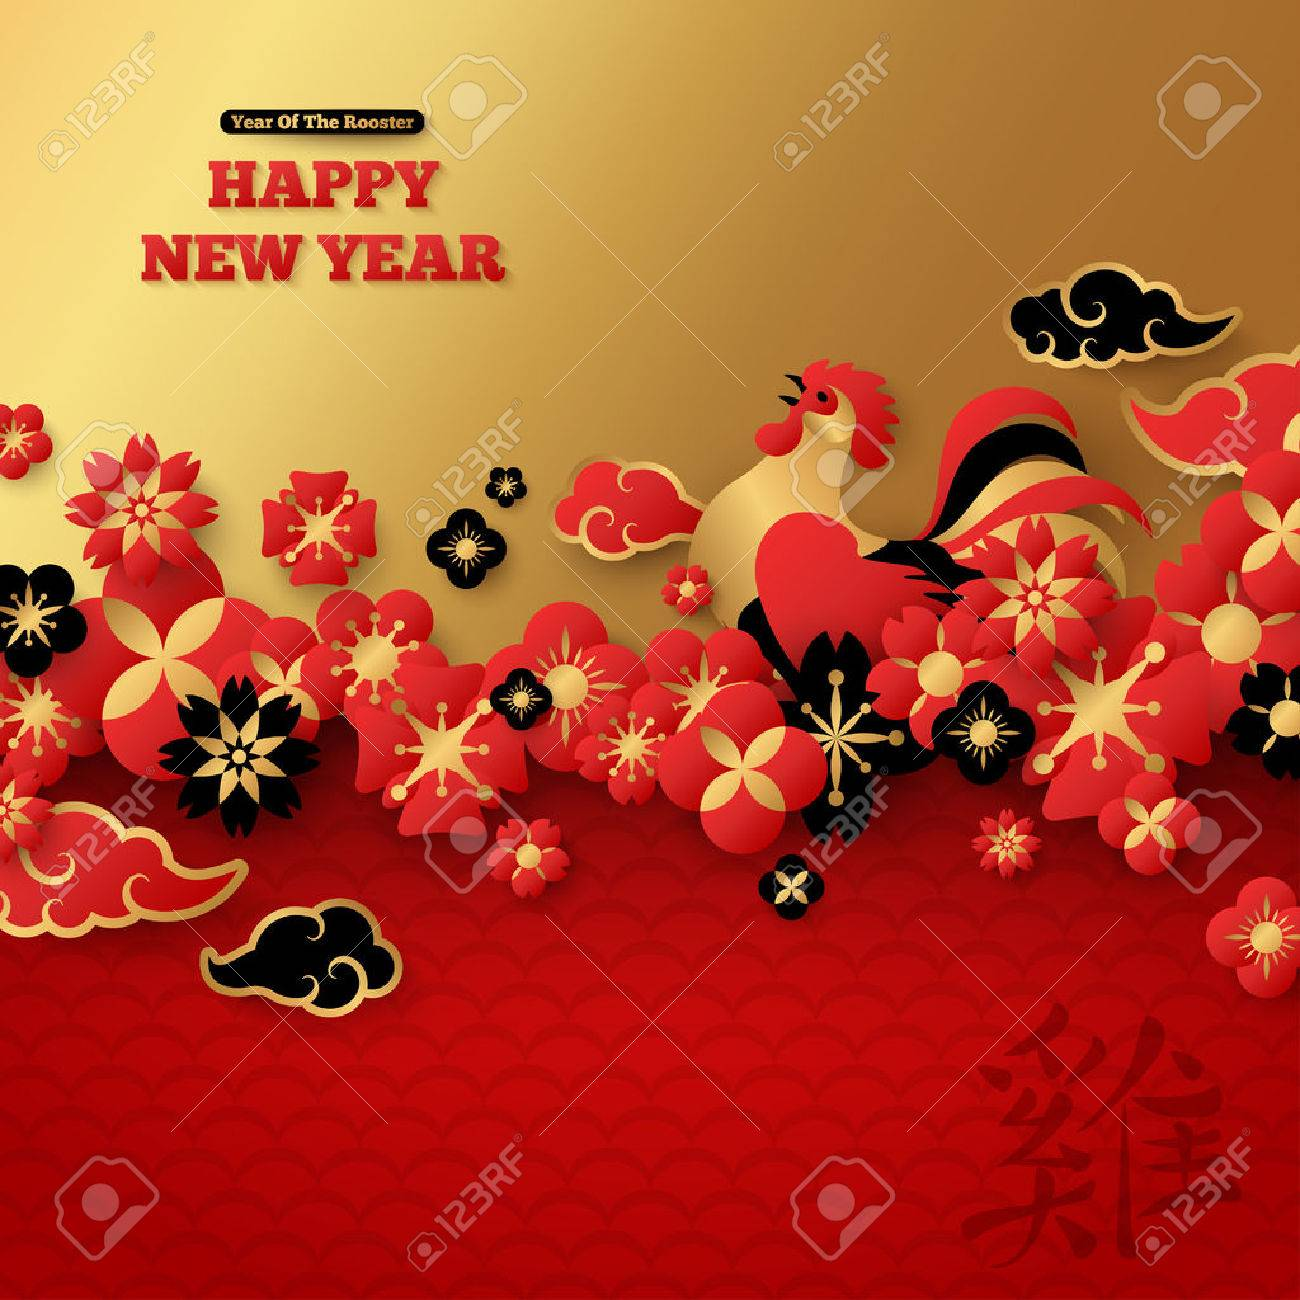 2017 chinese new year greeting card with floral border and crowing rooster stock vector - 2017 Chinese New Year